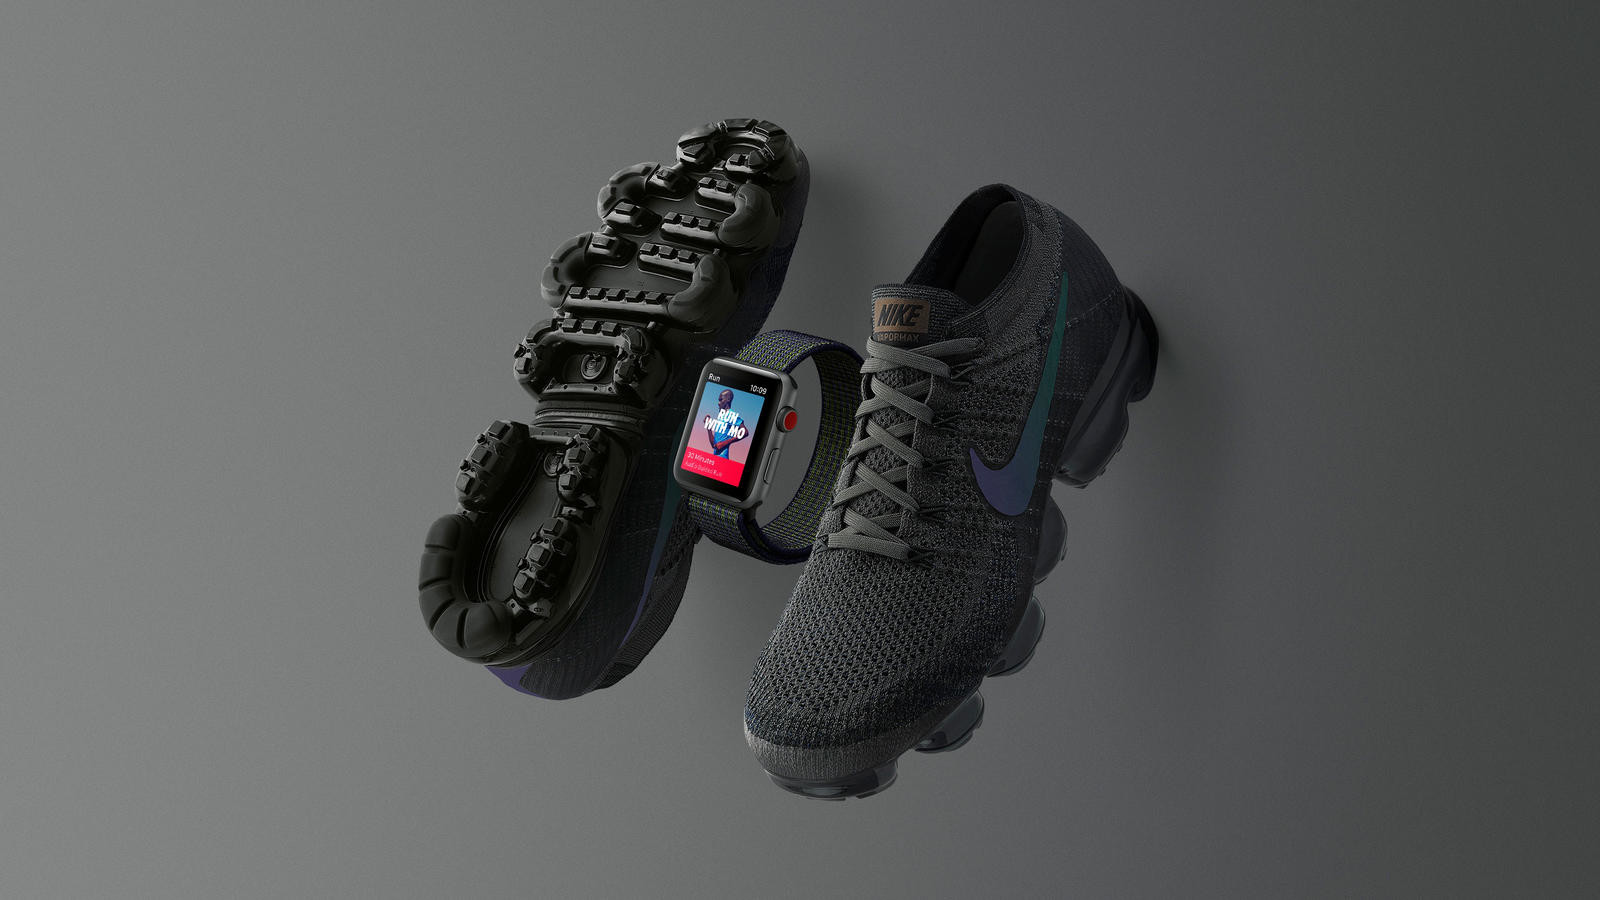 Nike debuts new Midnight Fog edition of the Apple Watch Series 3